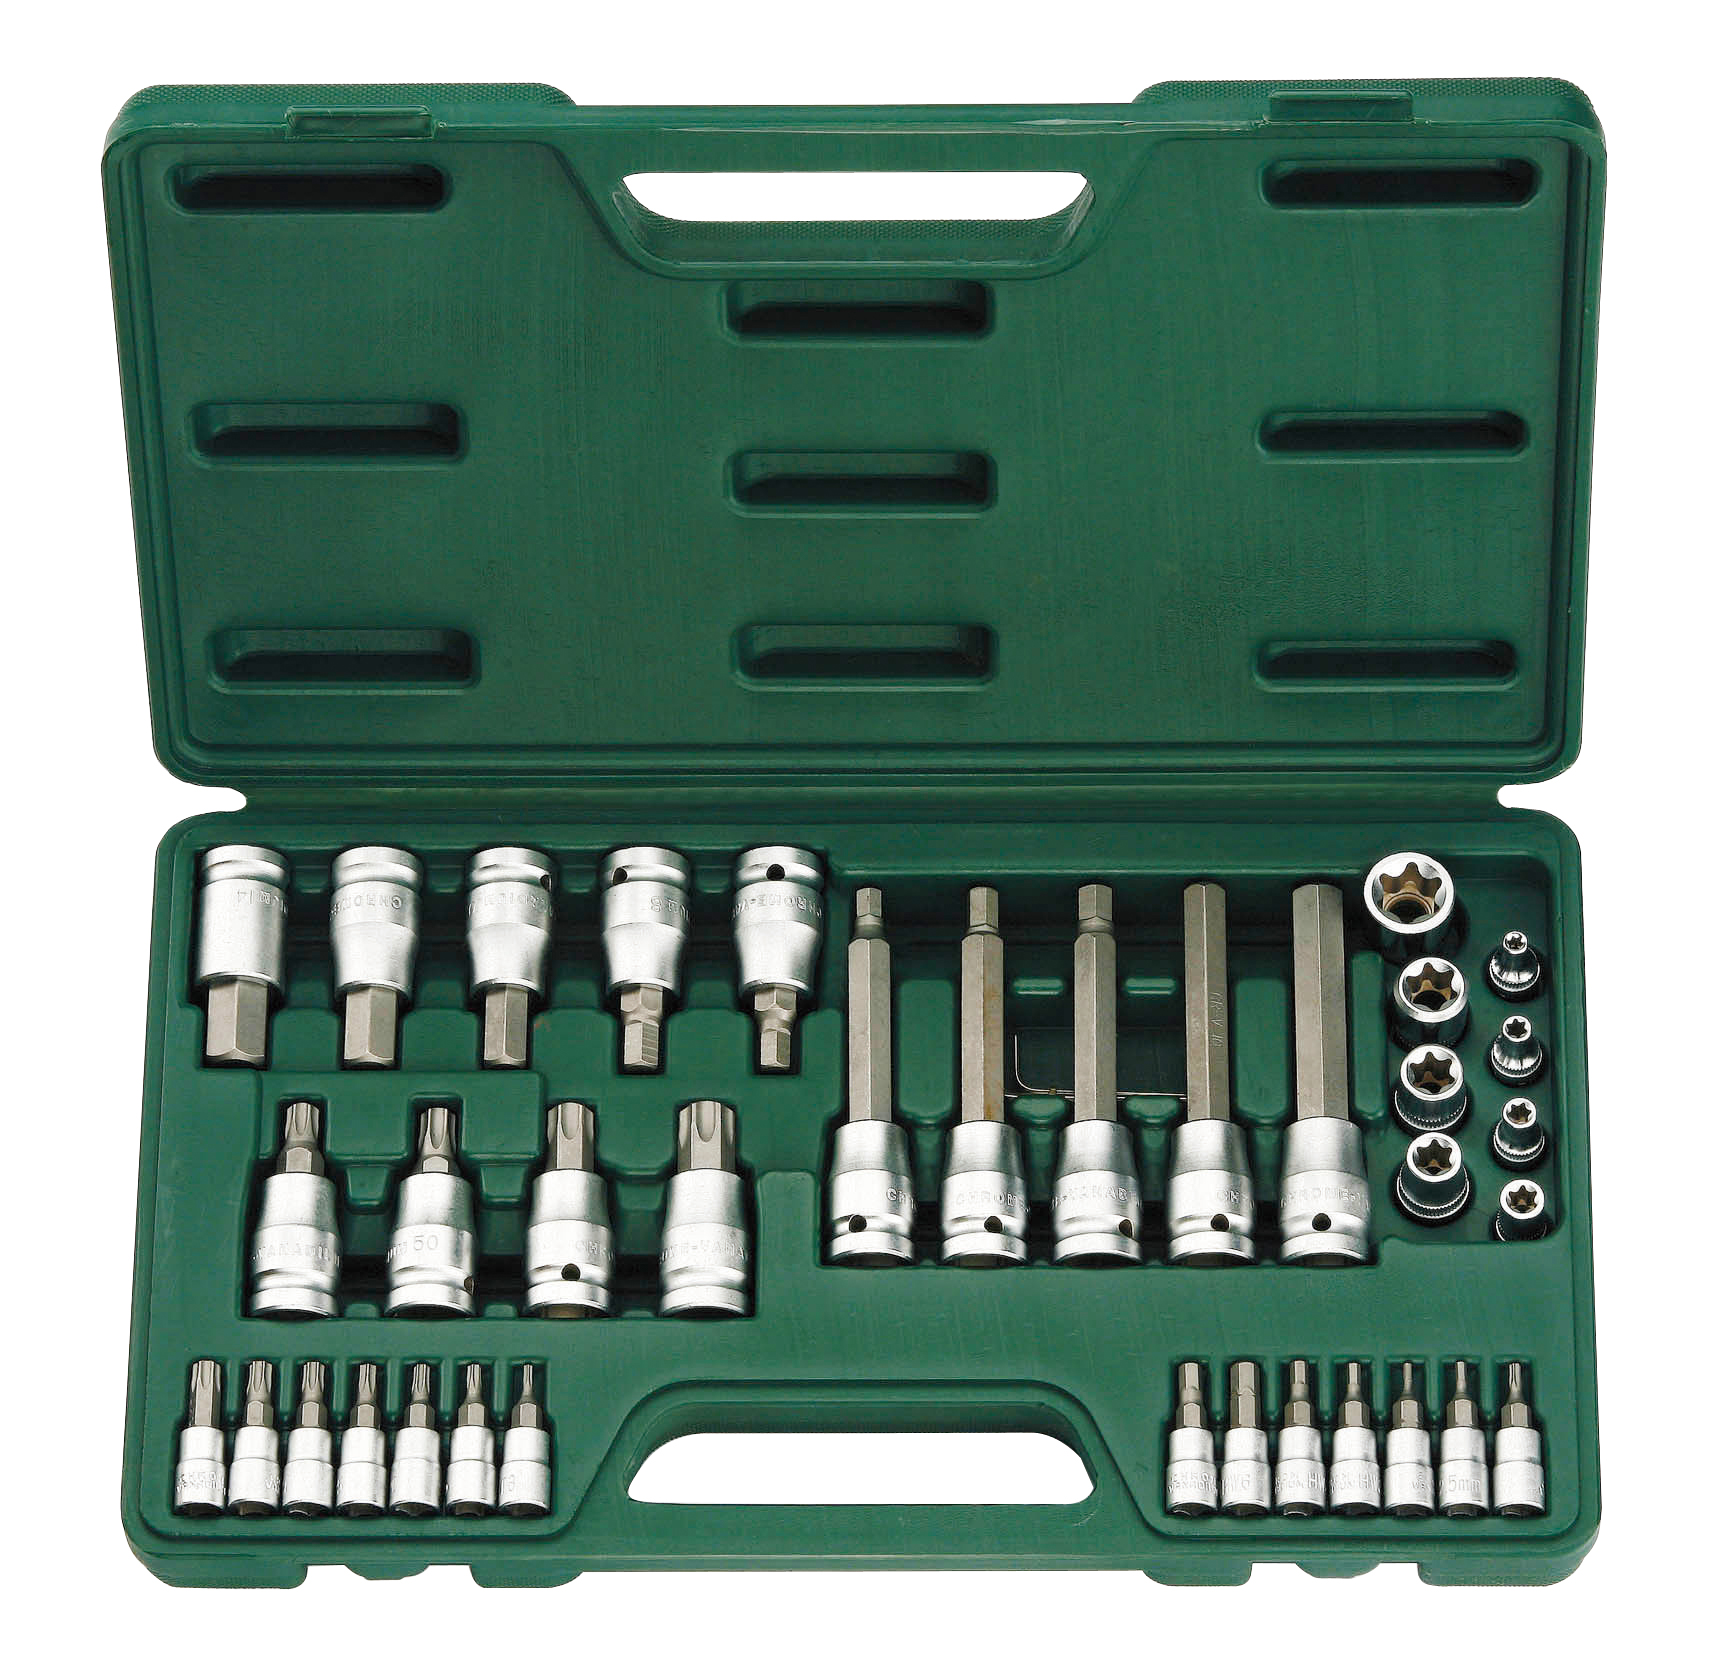 41 Pieces CR-V Bit Socket SET